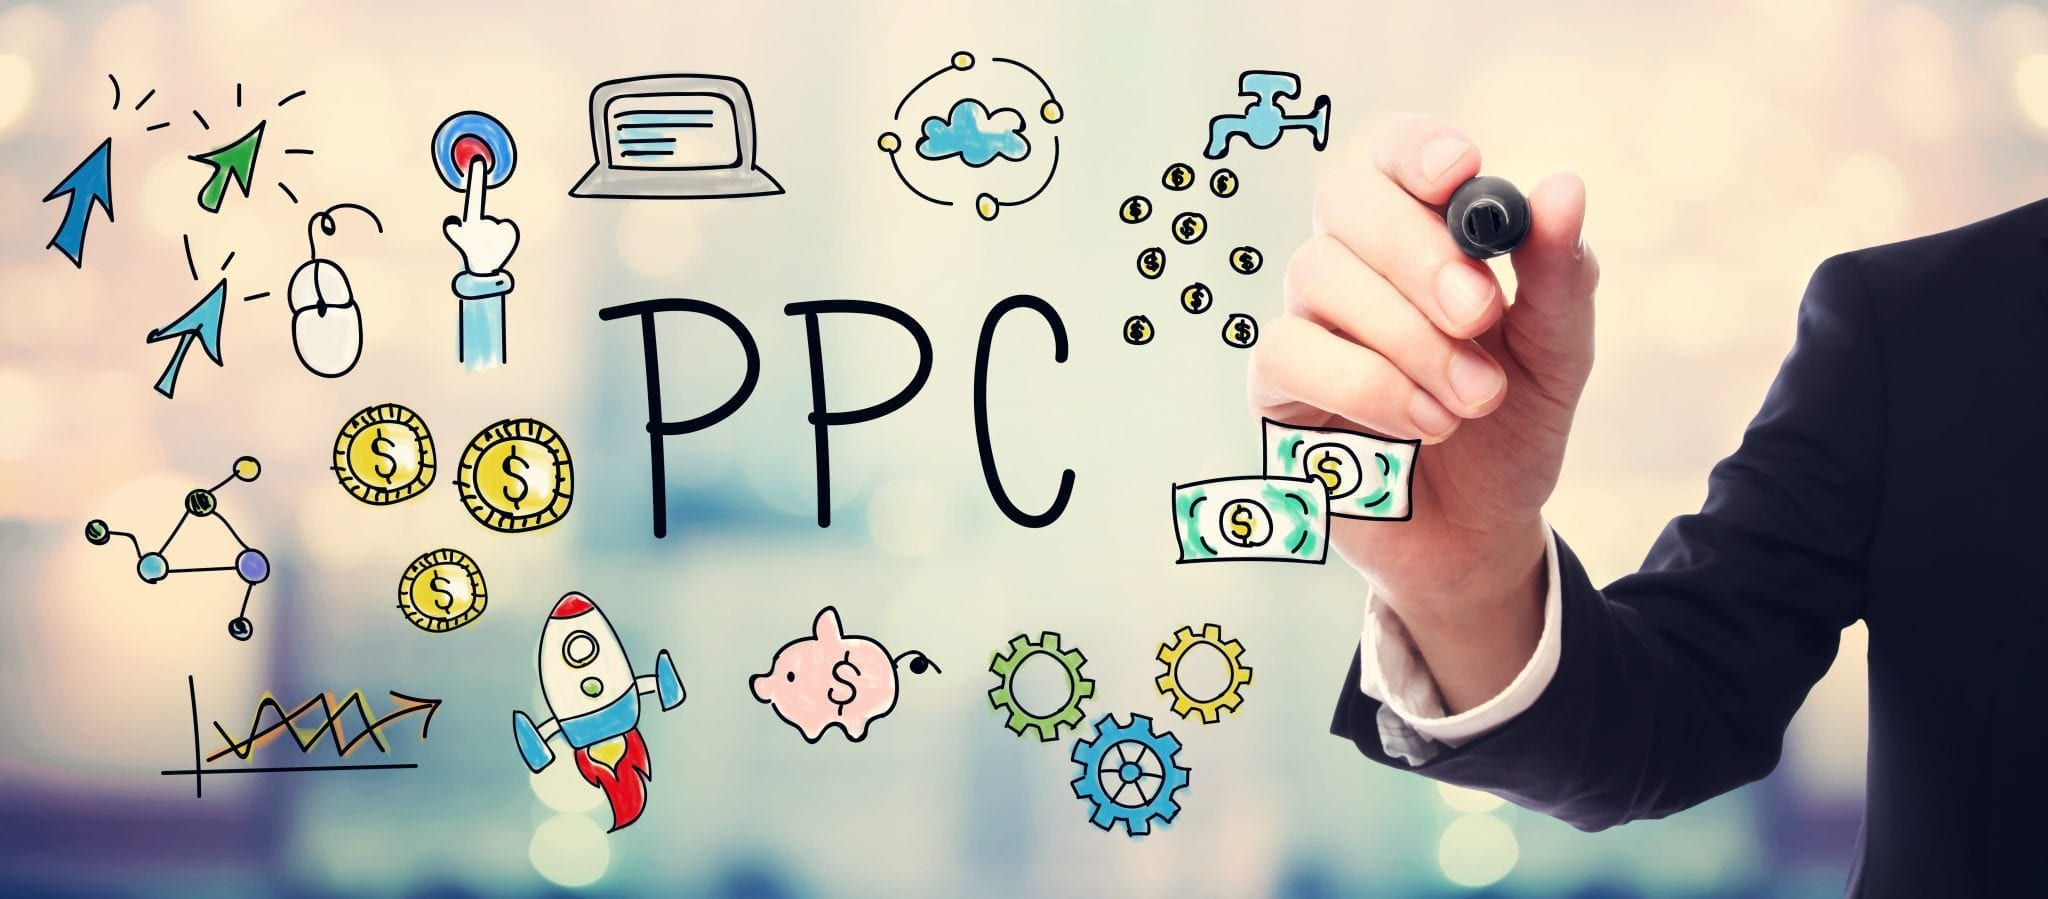 Pay Per Click (PPC) – Great ROI in the Right Hands